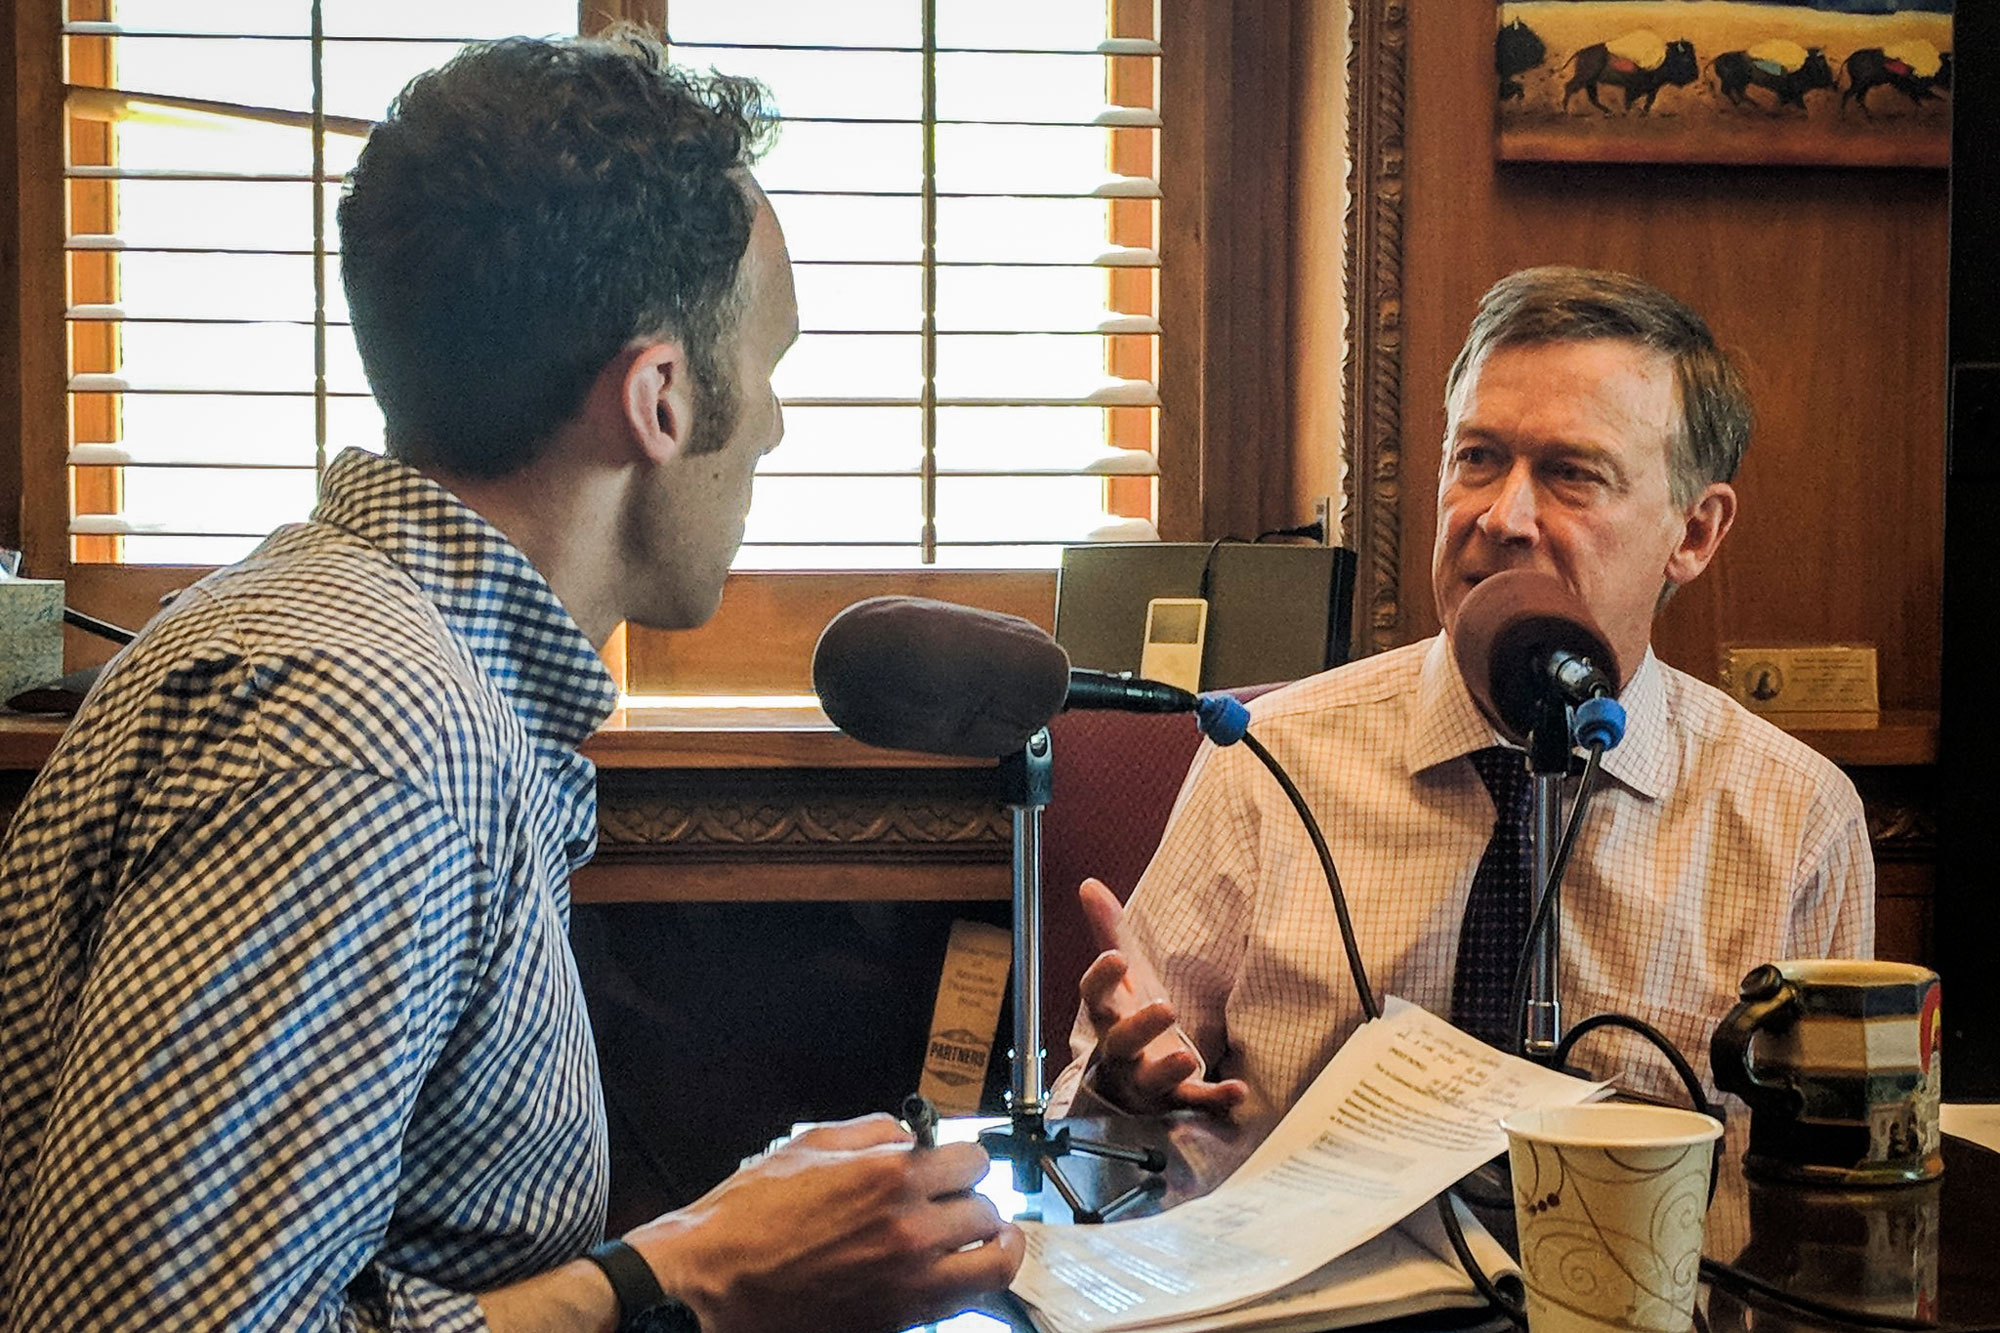 Photo: Gov. Hickenlooper Interivew | Hick And Warner - SBrasch